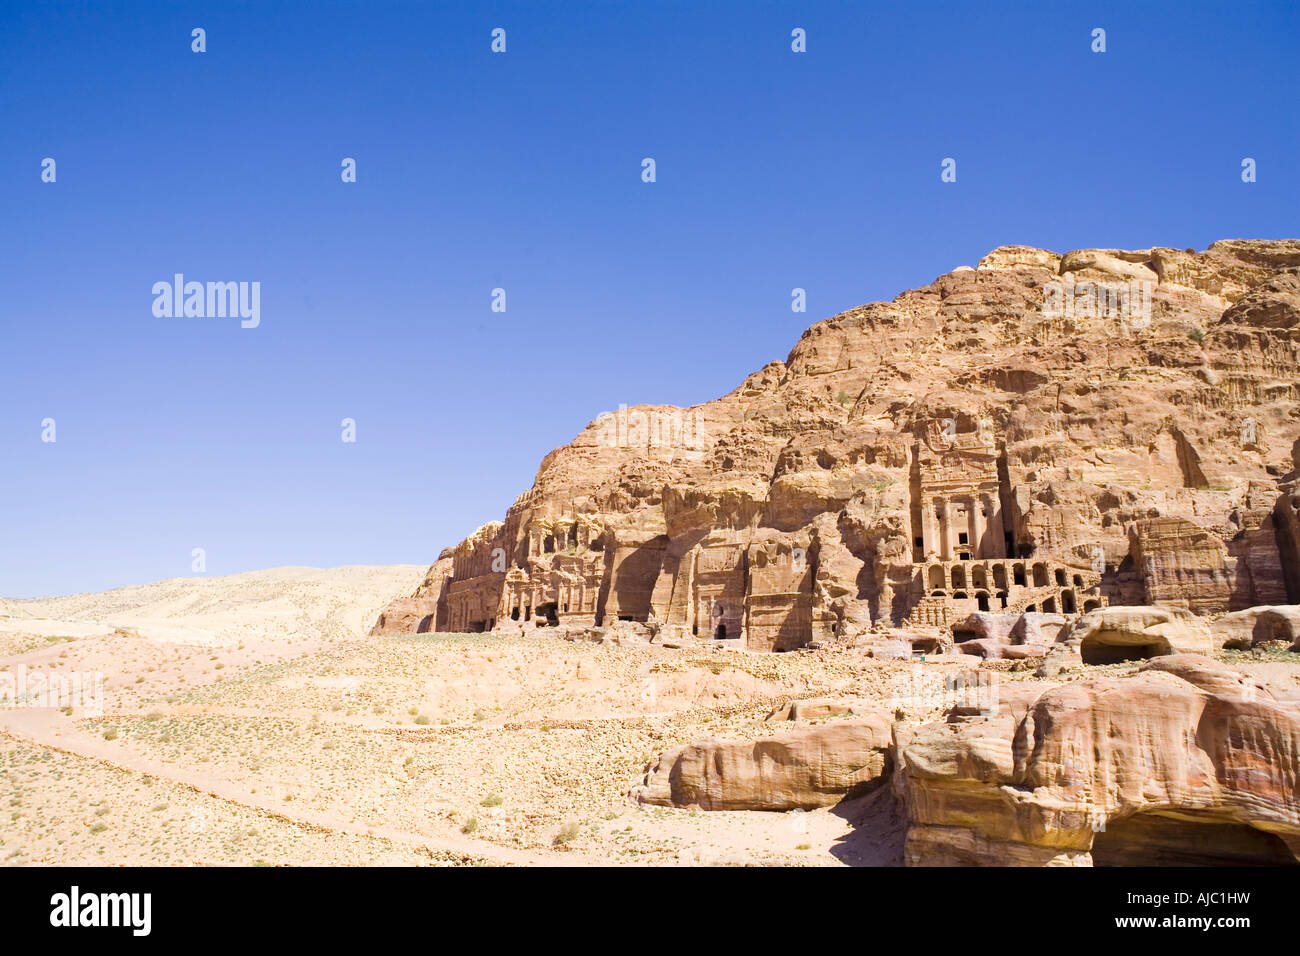 Low Angle View of Archaeological Remains Stock Photo